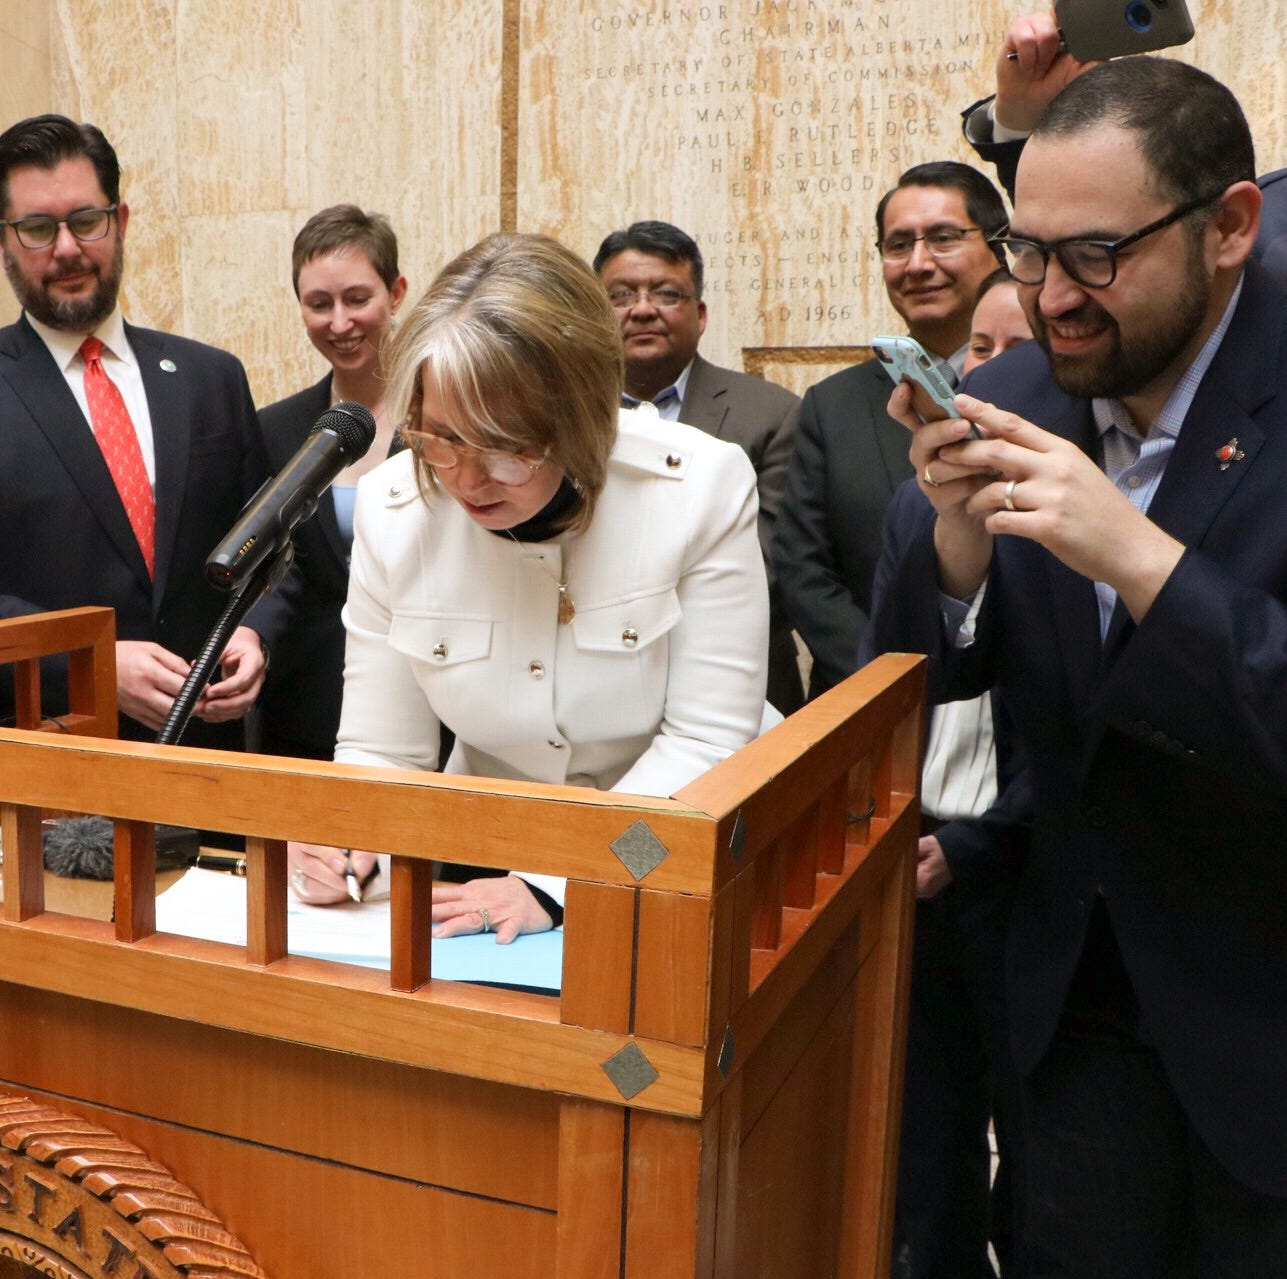 New Mexico governor signs landmark clean energy bill